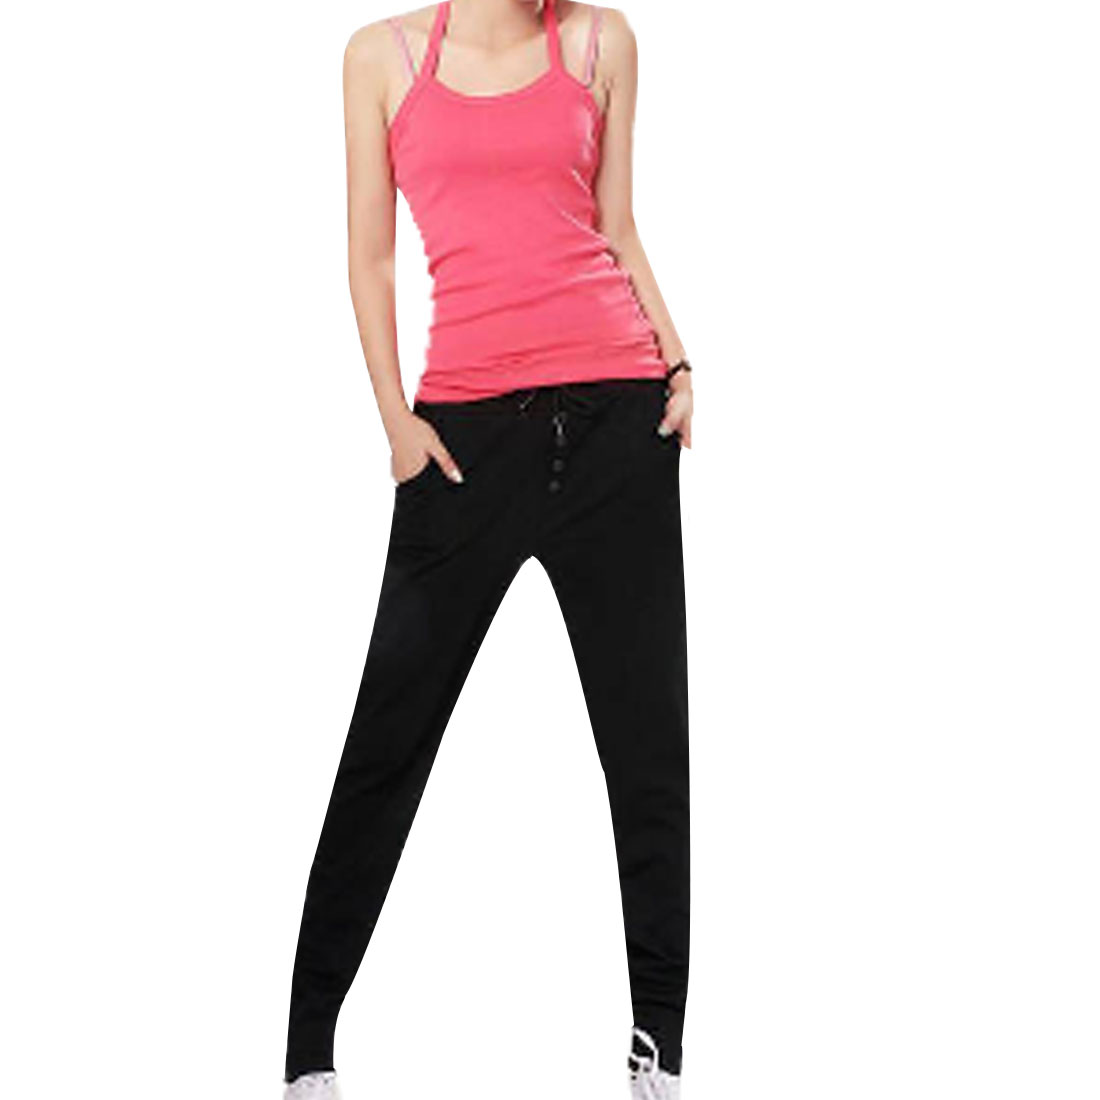 Drawstring Waist Button Decor Solid Color Black Casual Pants for Women S